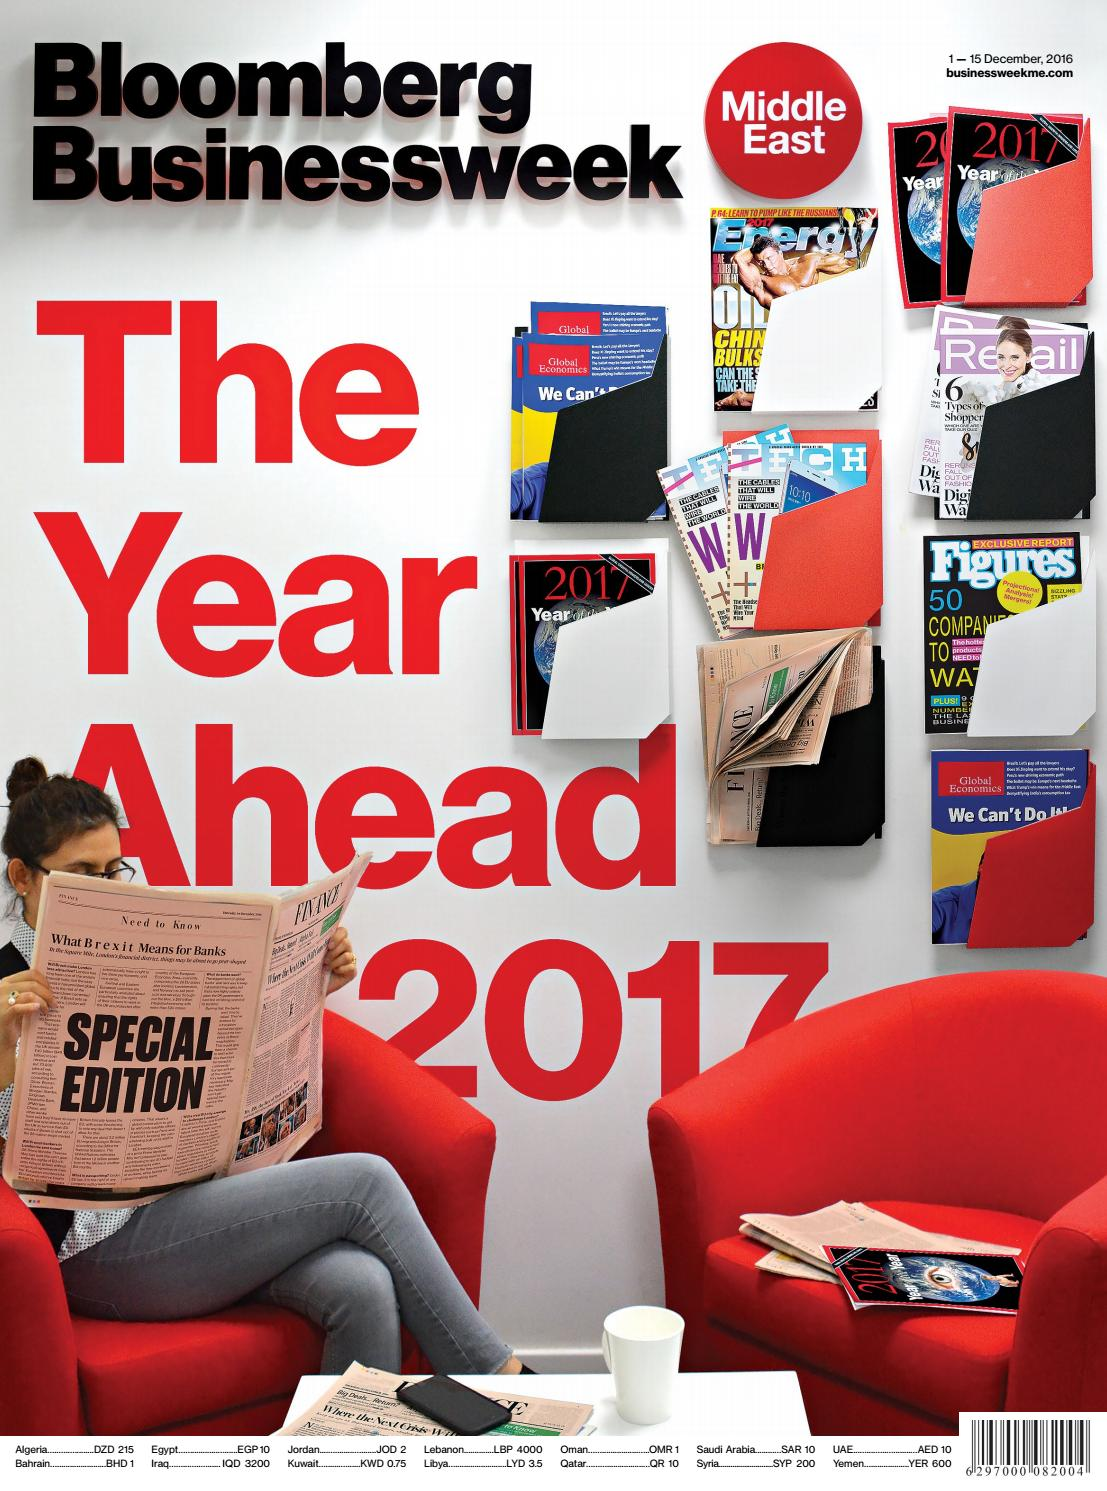 Bloomberg Businessweek Middle East Year Ahead 2017 Issue by UMS